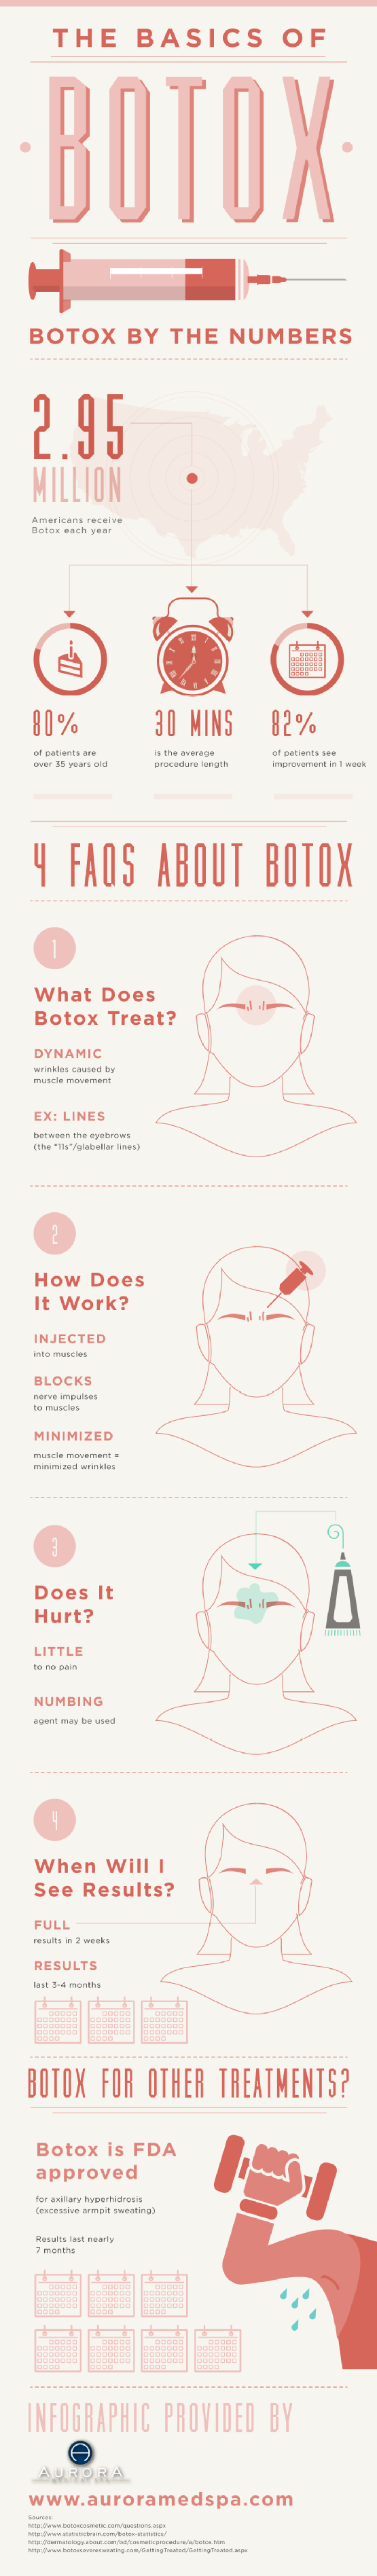 the-basics-of-botox_525f3c5aba43d